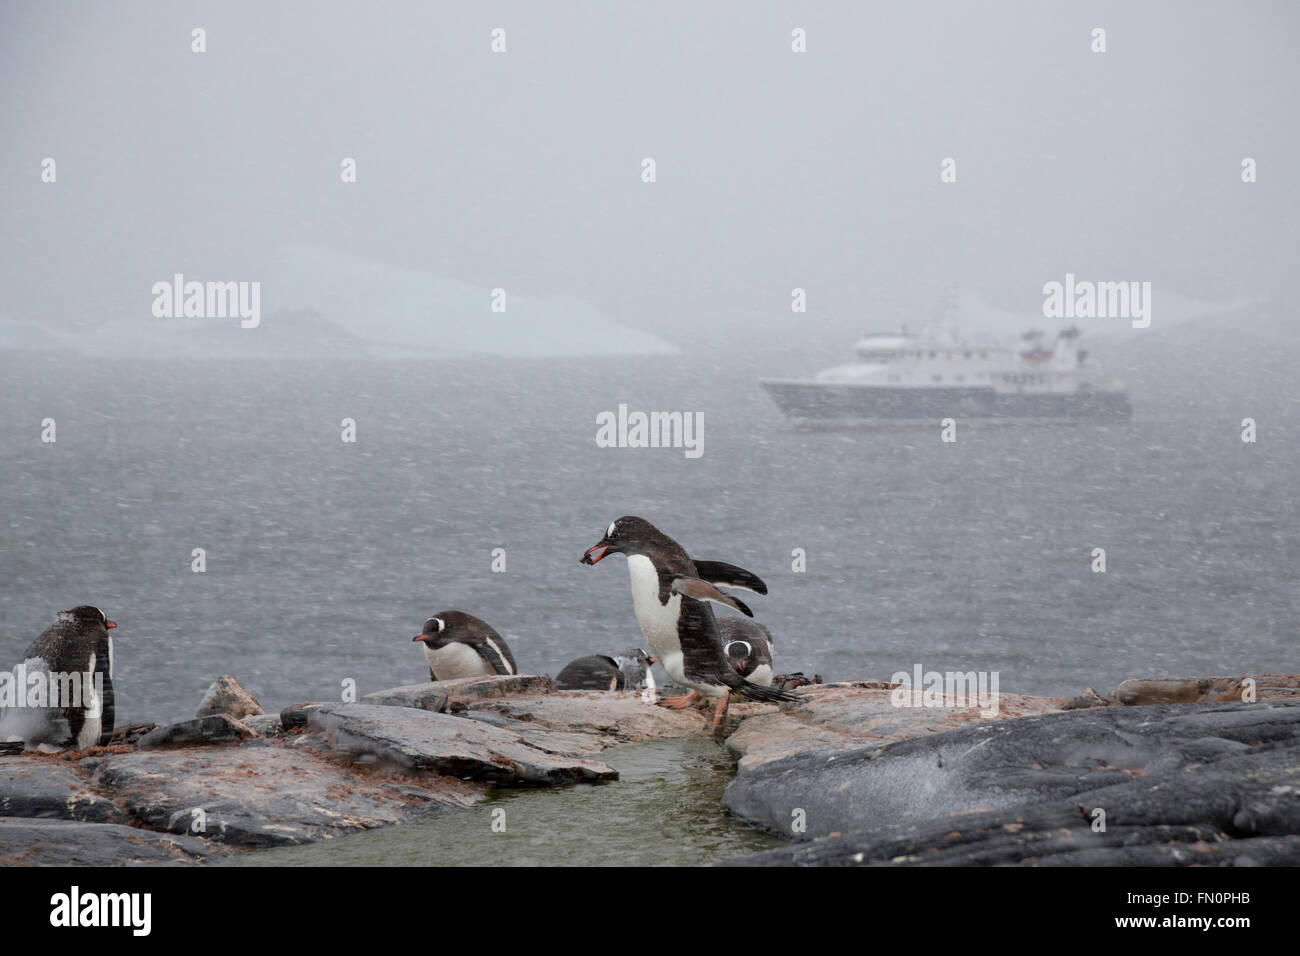 Antarctica, Antarctic peninsula, Booth Island, gentoo penguin carrying stone to nest, expedition ship Hanse Explorer - Stock Image